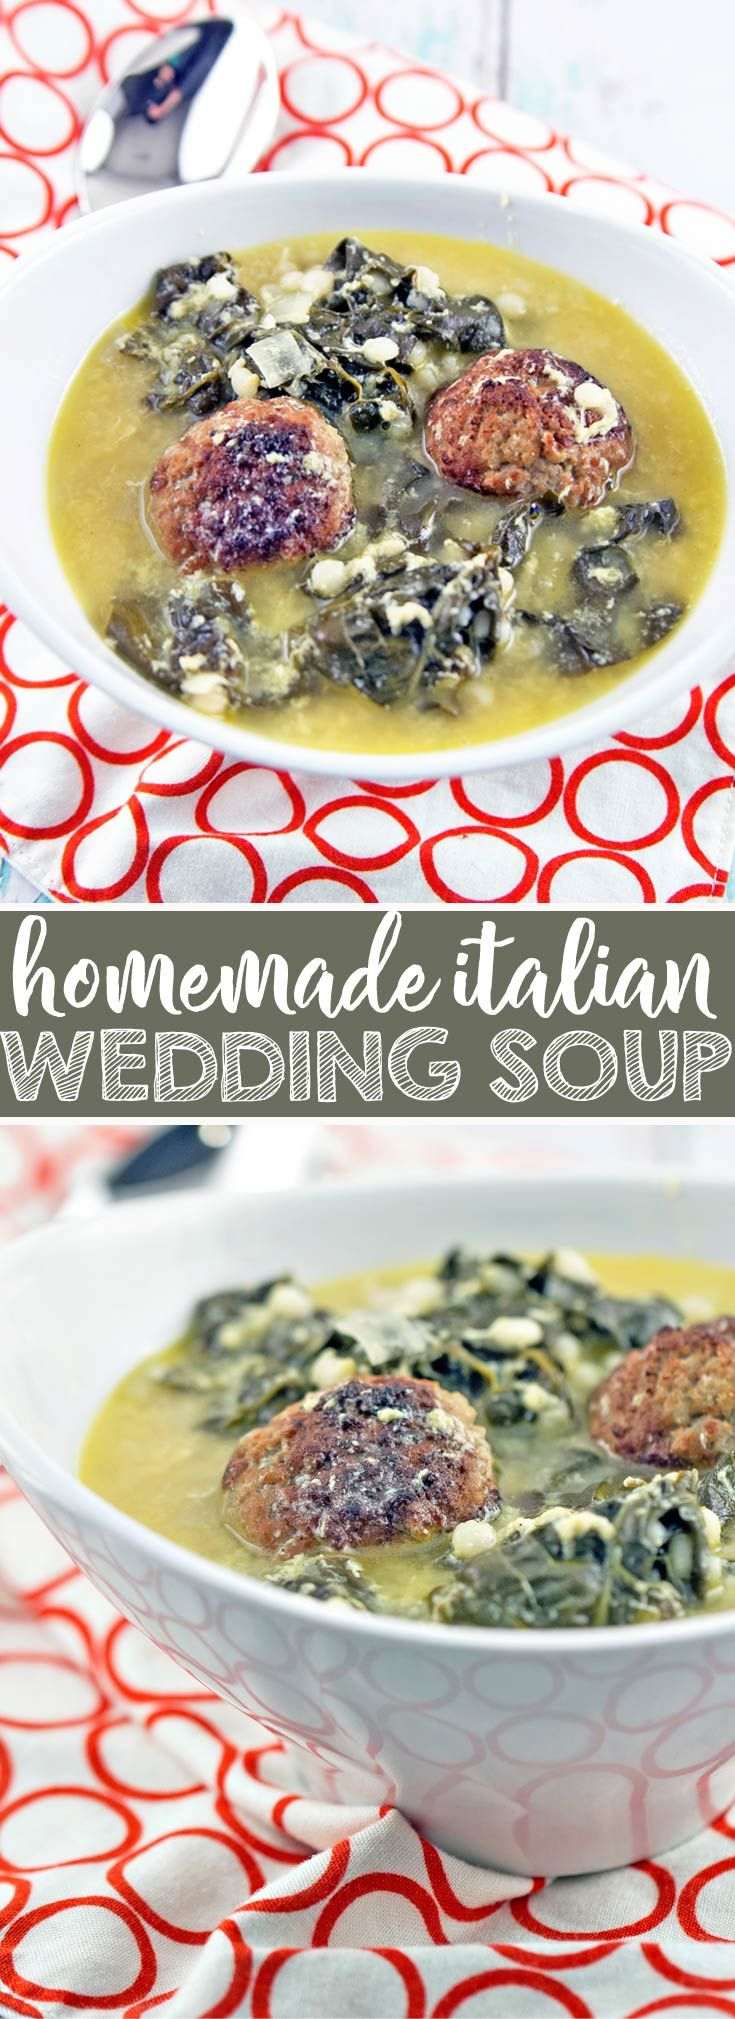 Italian Wedding Soup: a delicious, comforting favorite, made with things already found in your freezer and pantry. {Bunsen Burner Bakery} #soup #italianweddingsoup #meatballs via @bnsnbrnrbakery